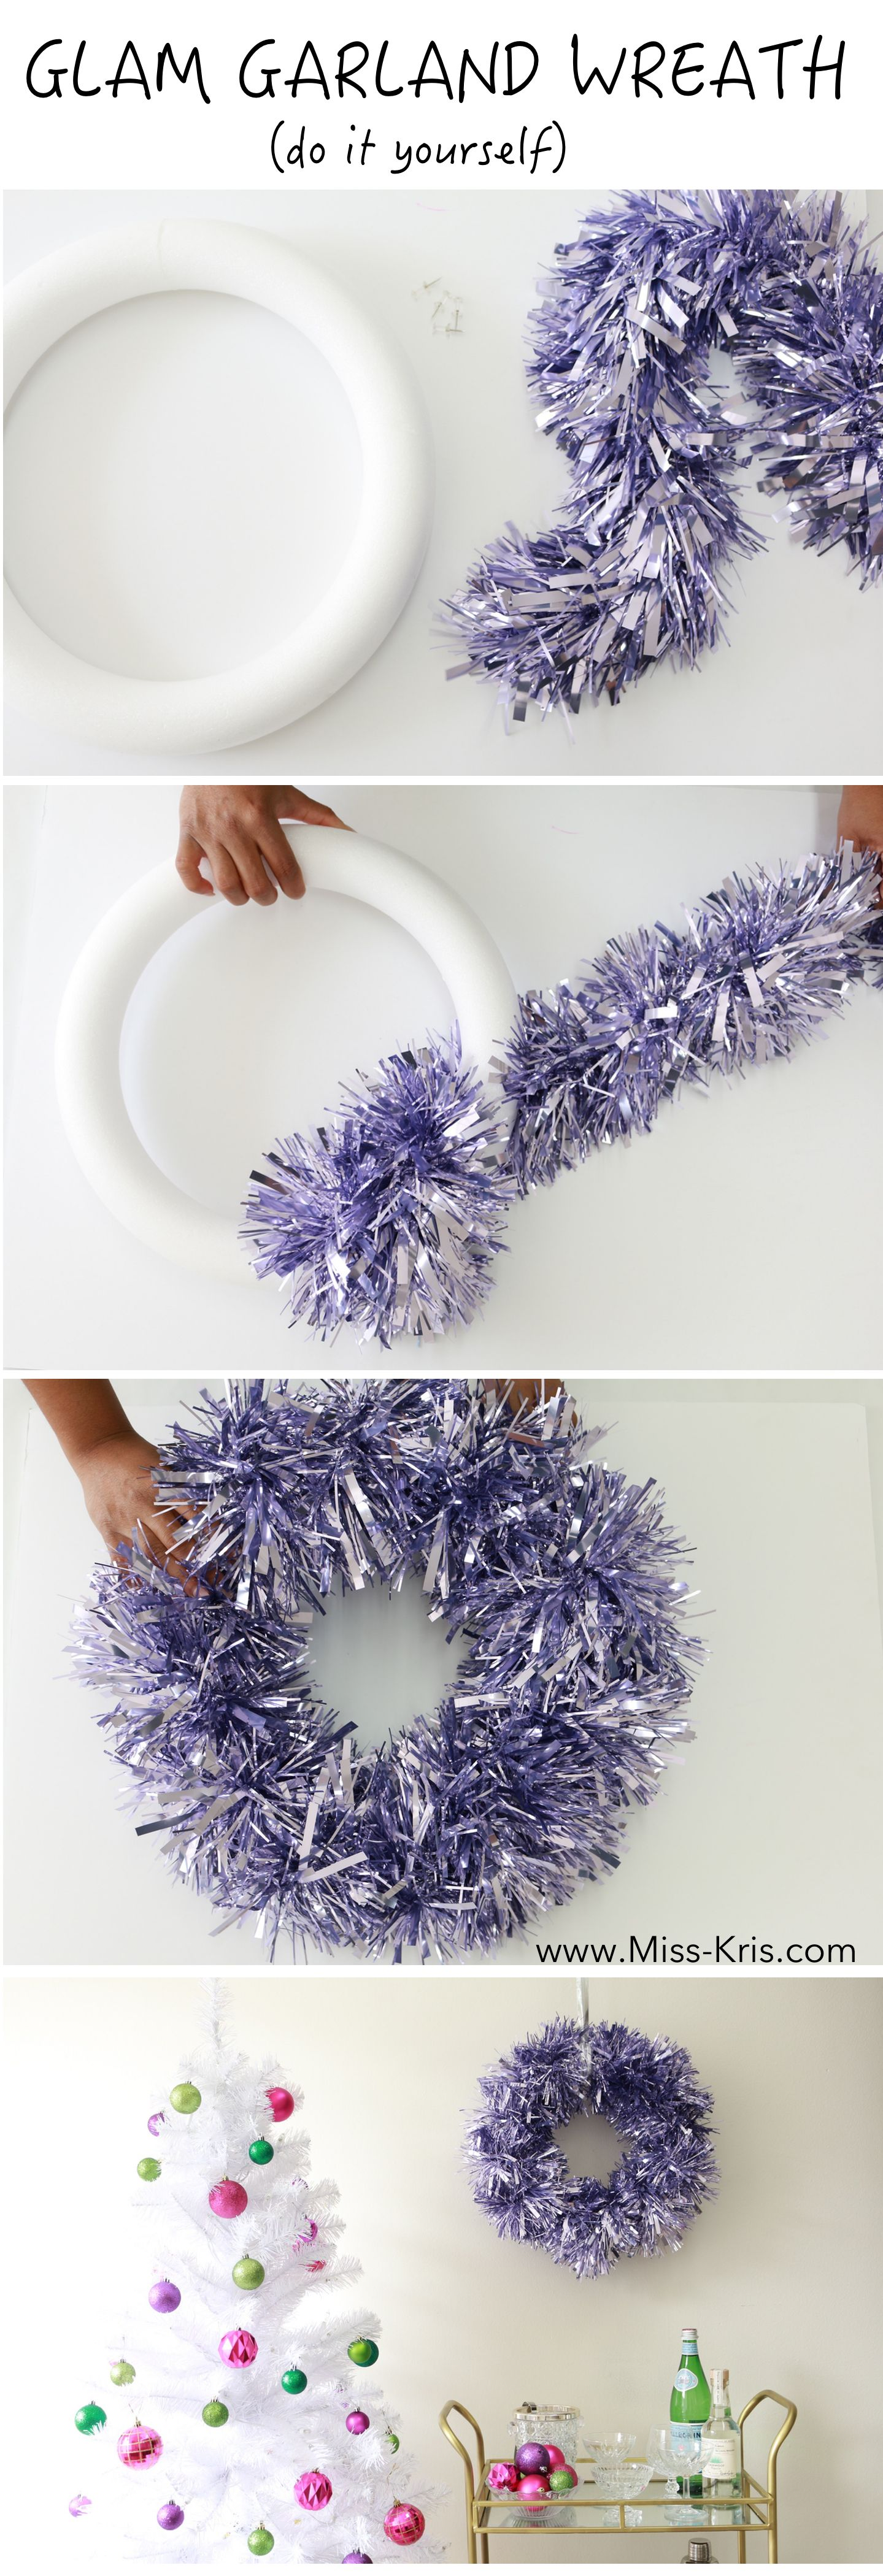 Diy christmas wreath by miss kris full post here httpmiss diy christmas wreath by miss kris full post here http solutioingenieria Choice Image